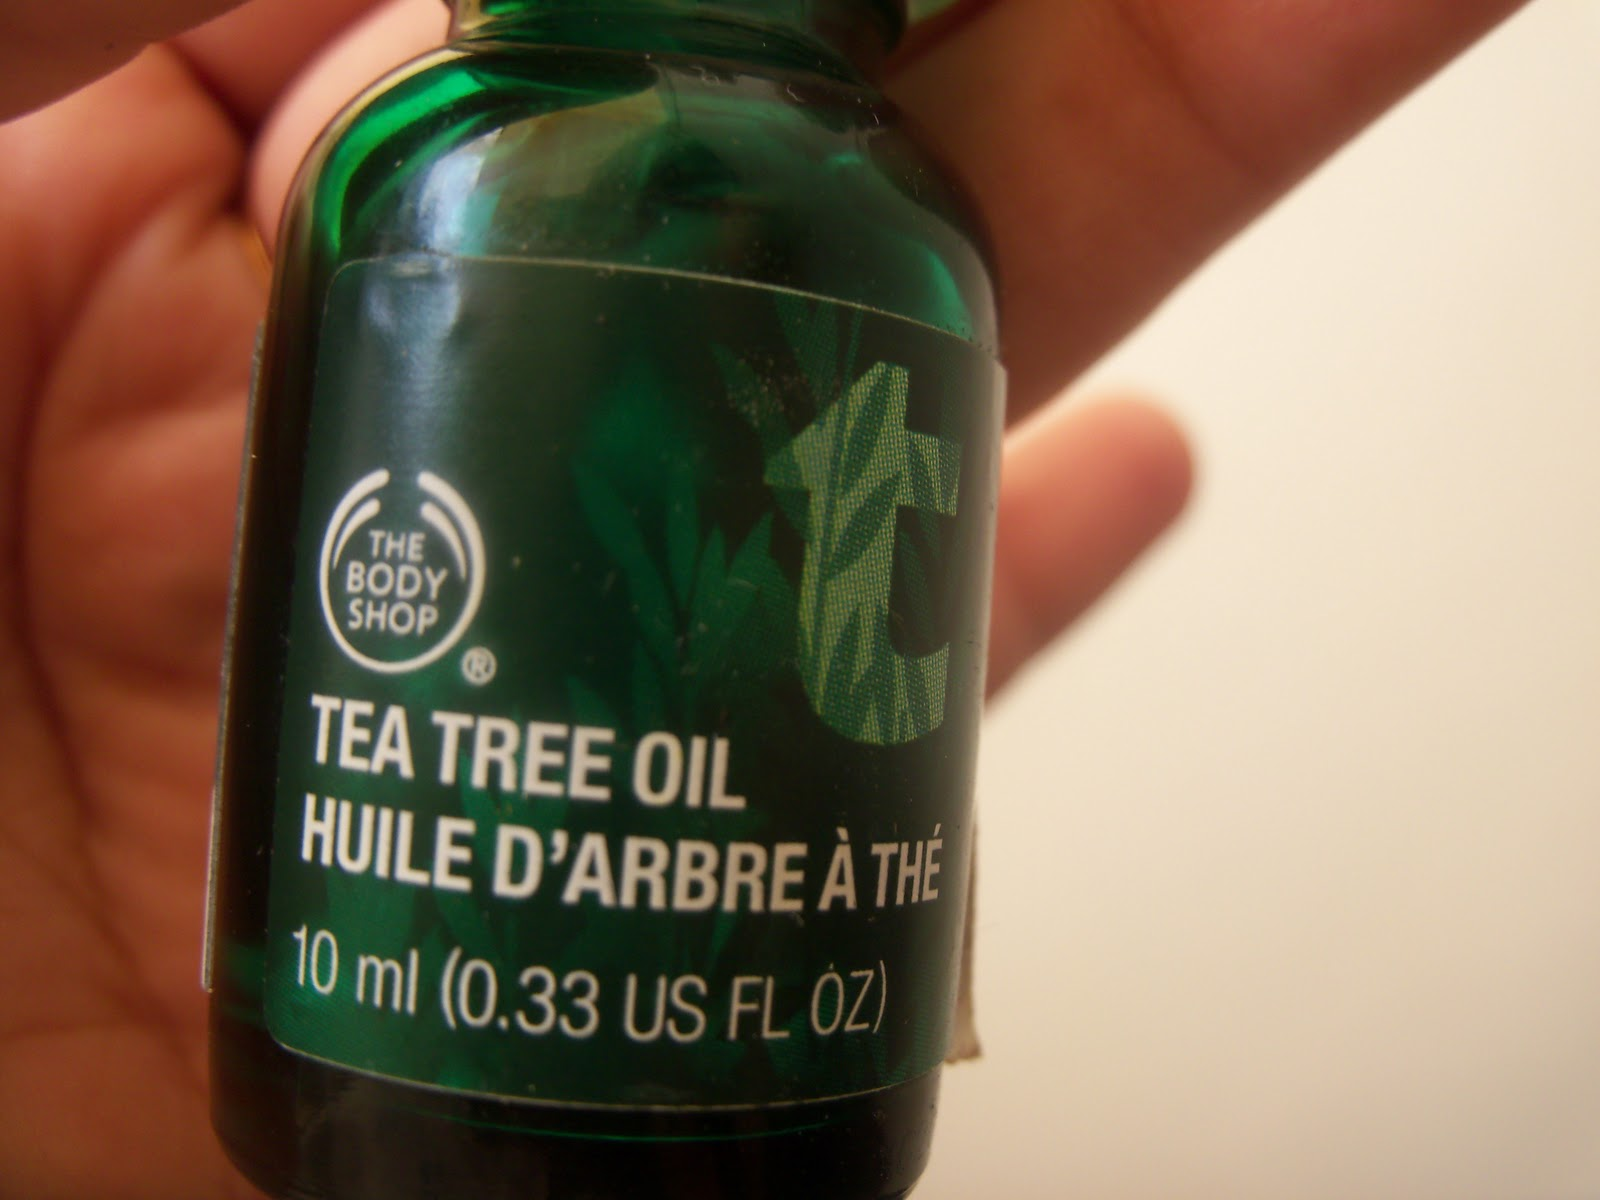 Tea Tree Oil Body Shop Review Effective Acne Remedy The 10ml Is Called As A Medicine Cabinet Must And Claims That It Clears Tiny Flaws Of Your Face Overnight I Too Suffer From Problem